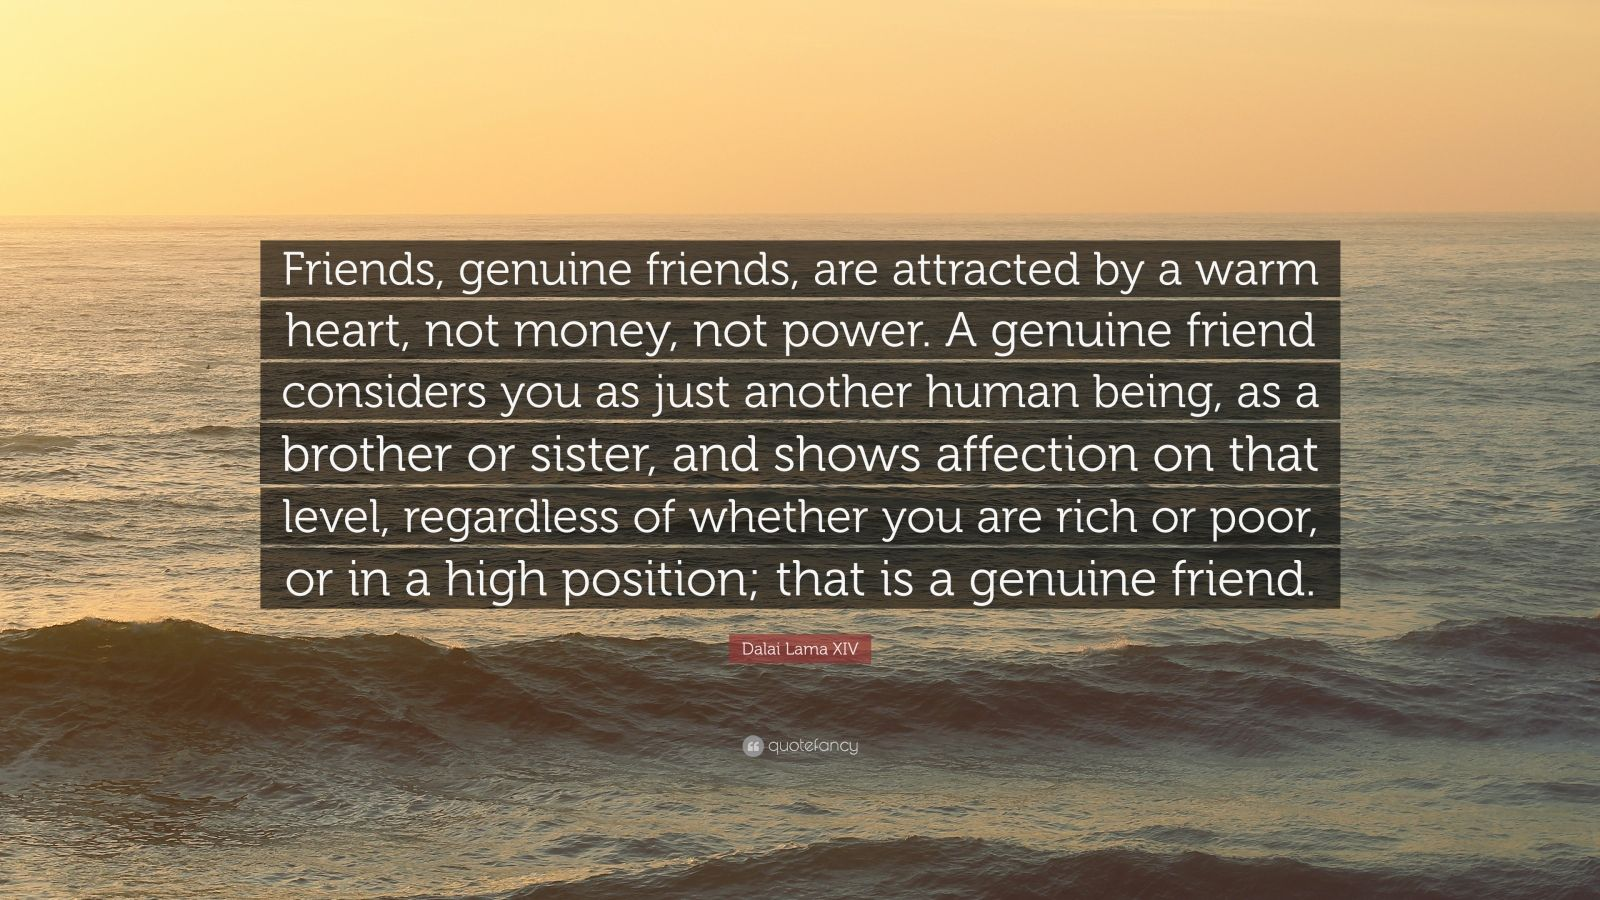 genuine friendships are hard to come What does it mean to have a genuine friendship with someone sarah july 2, 2014 share on facebook share on twitter shares: share on facebook share on twitter.